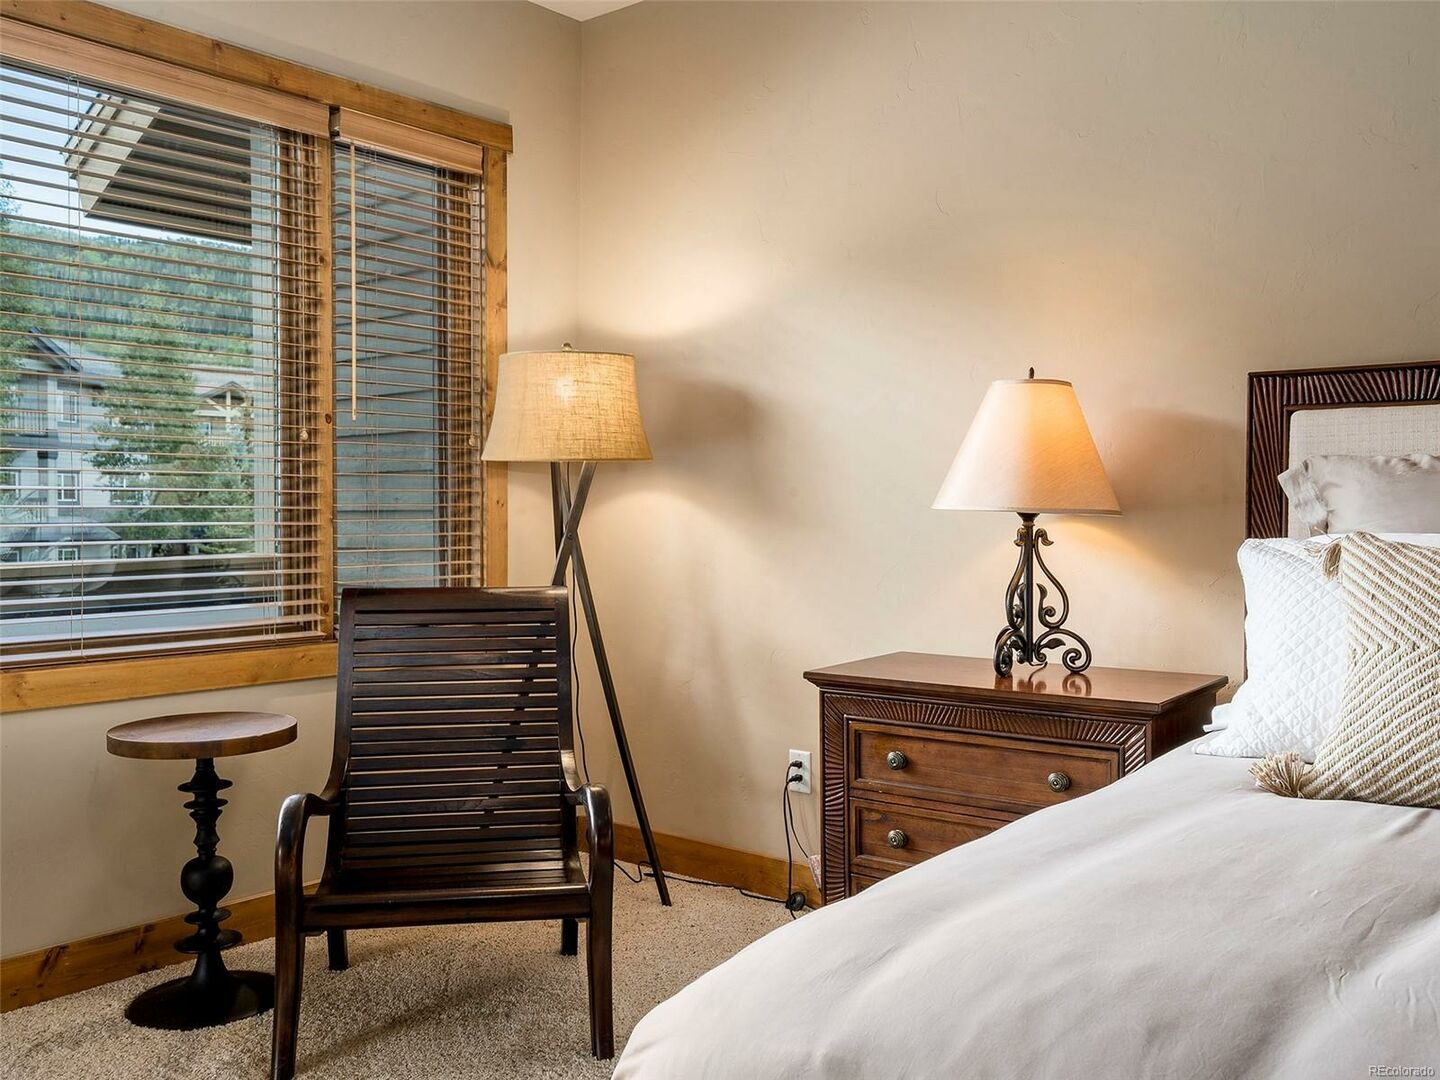 Chair, Large Bed, Nightstands, Lamps, and Window.